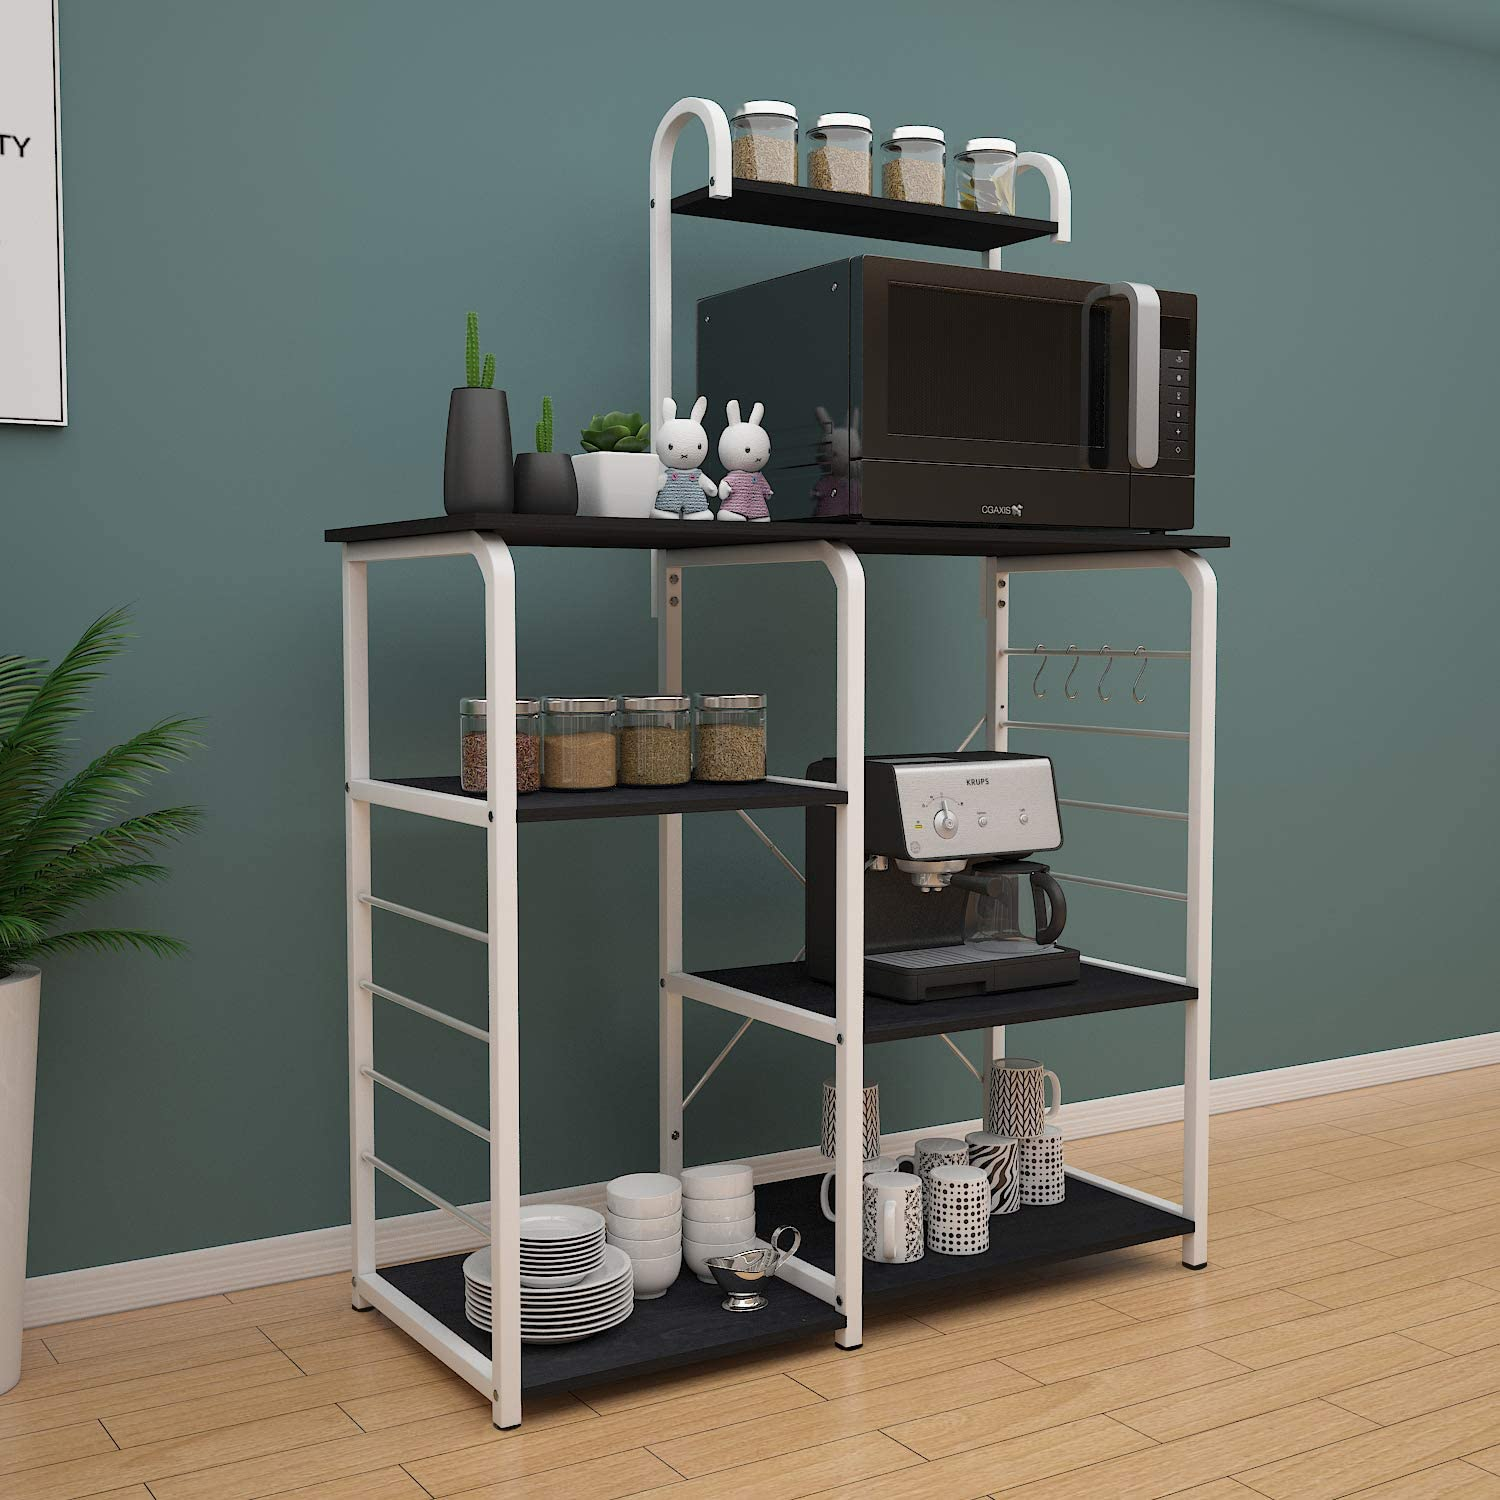 SogesHome 4-Tier Kitchen Baker's Rack Utility Microwave Oven Stand Storage Cart Workstation Shelf,Black 172-BK-SH